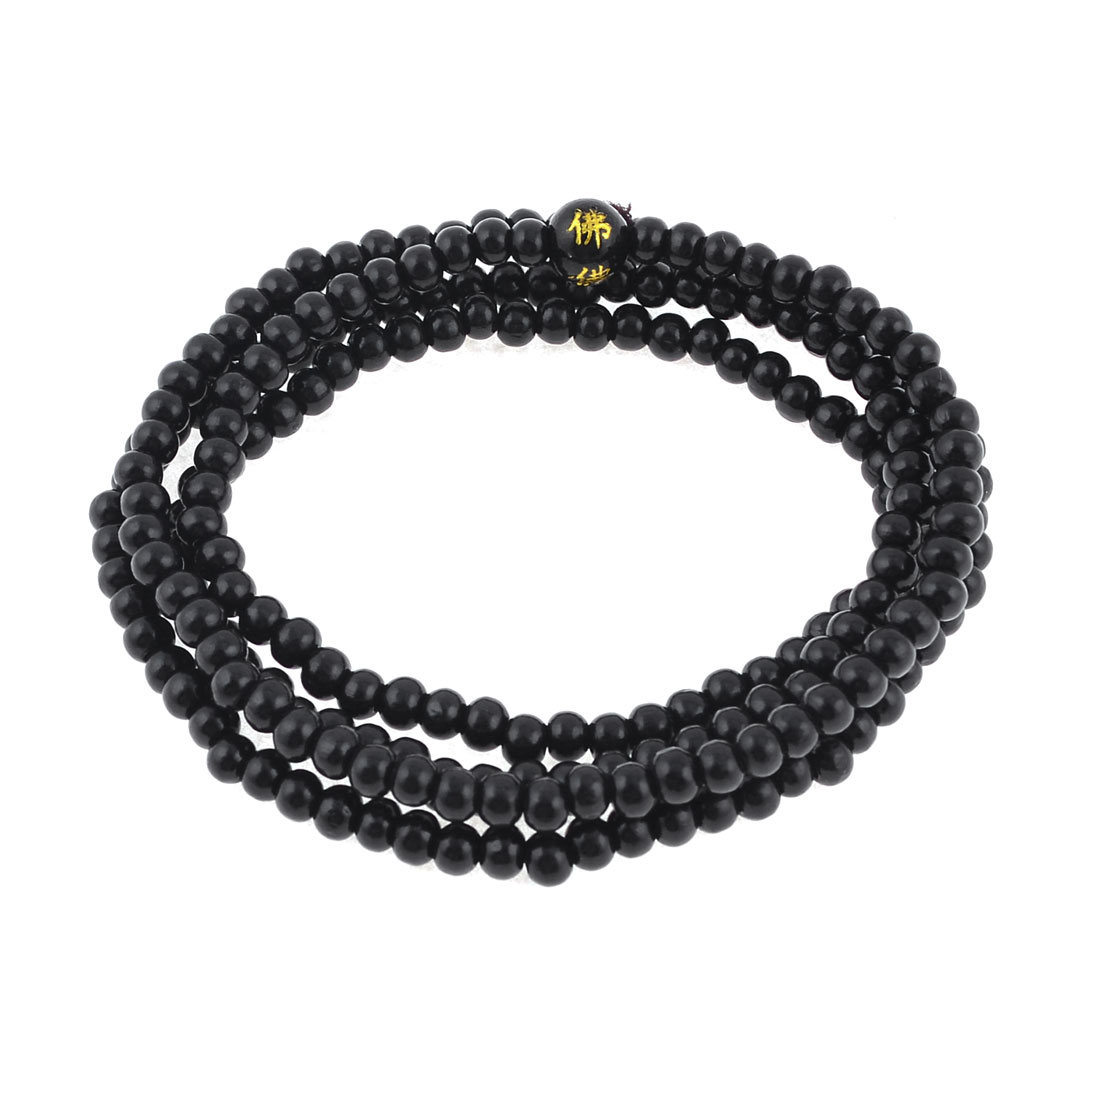 Stretch Strap 5mm Dia Bead Sandalwood Buddhist Prayer Necklace Black